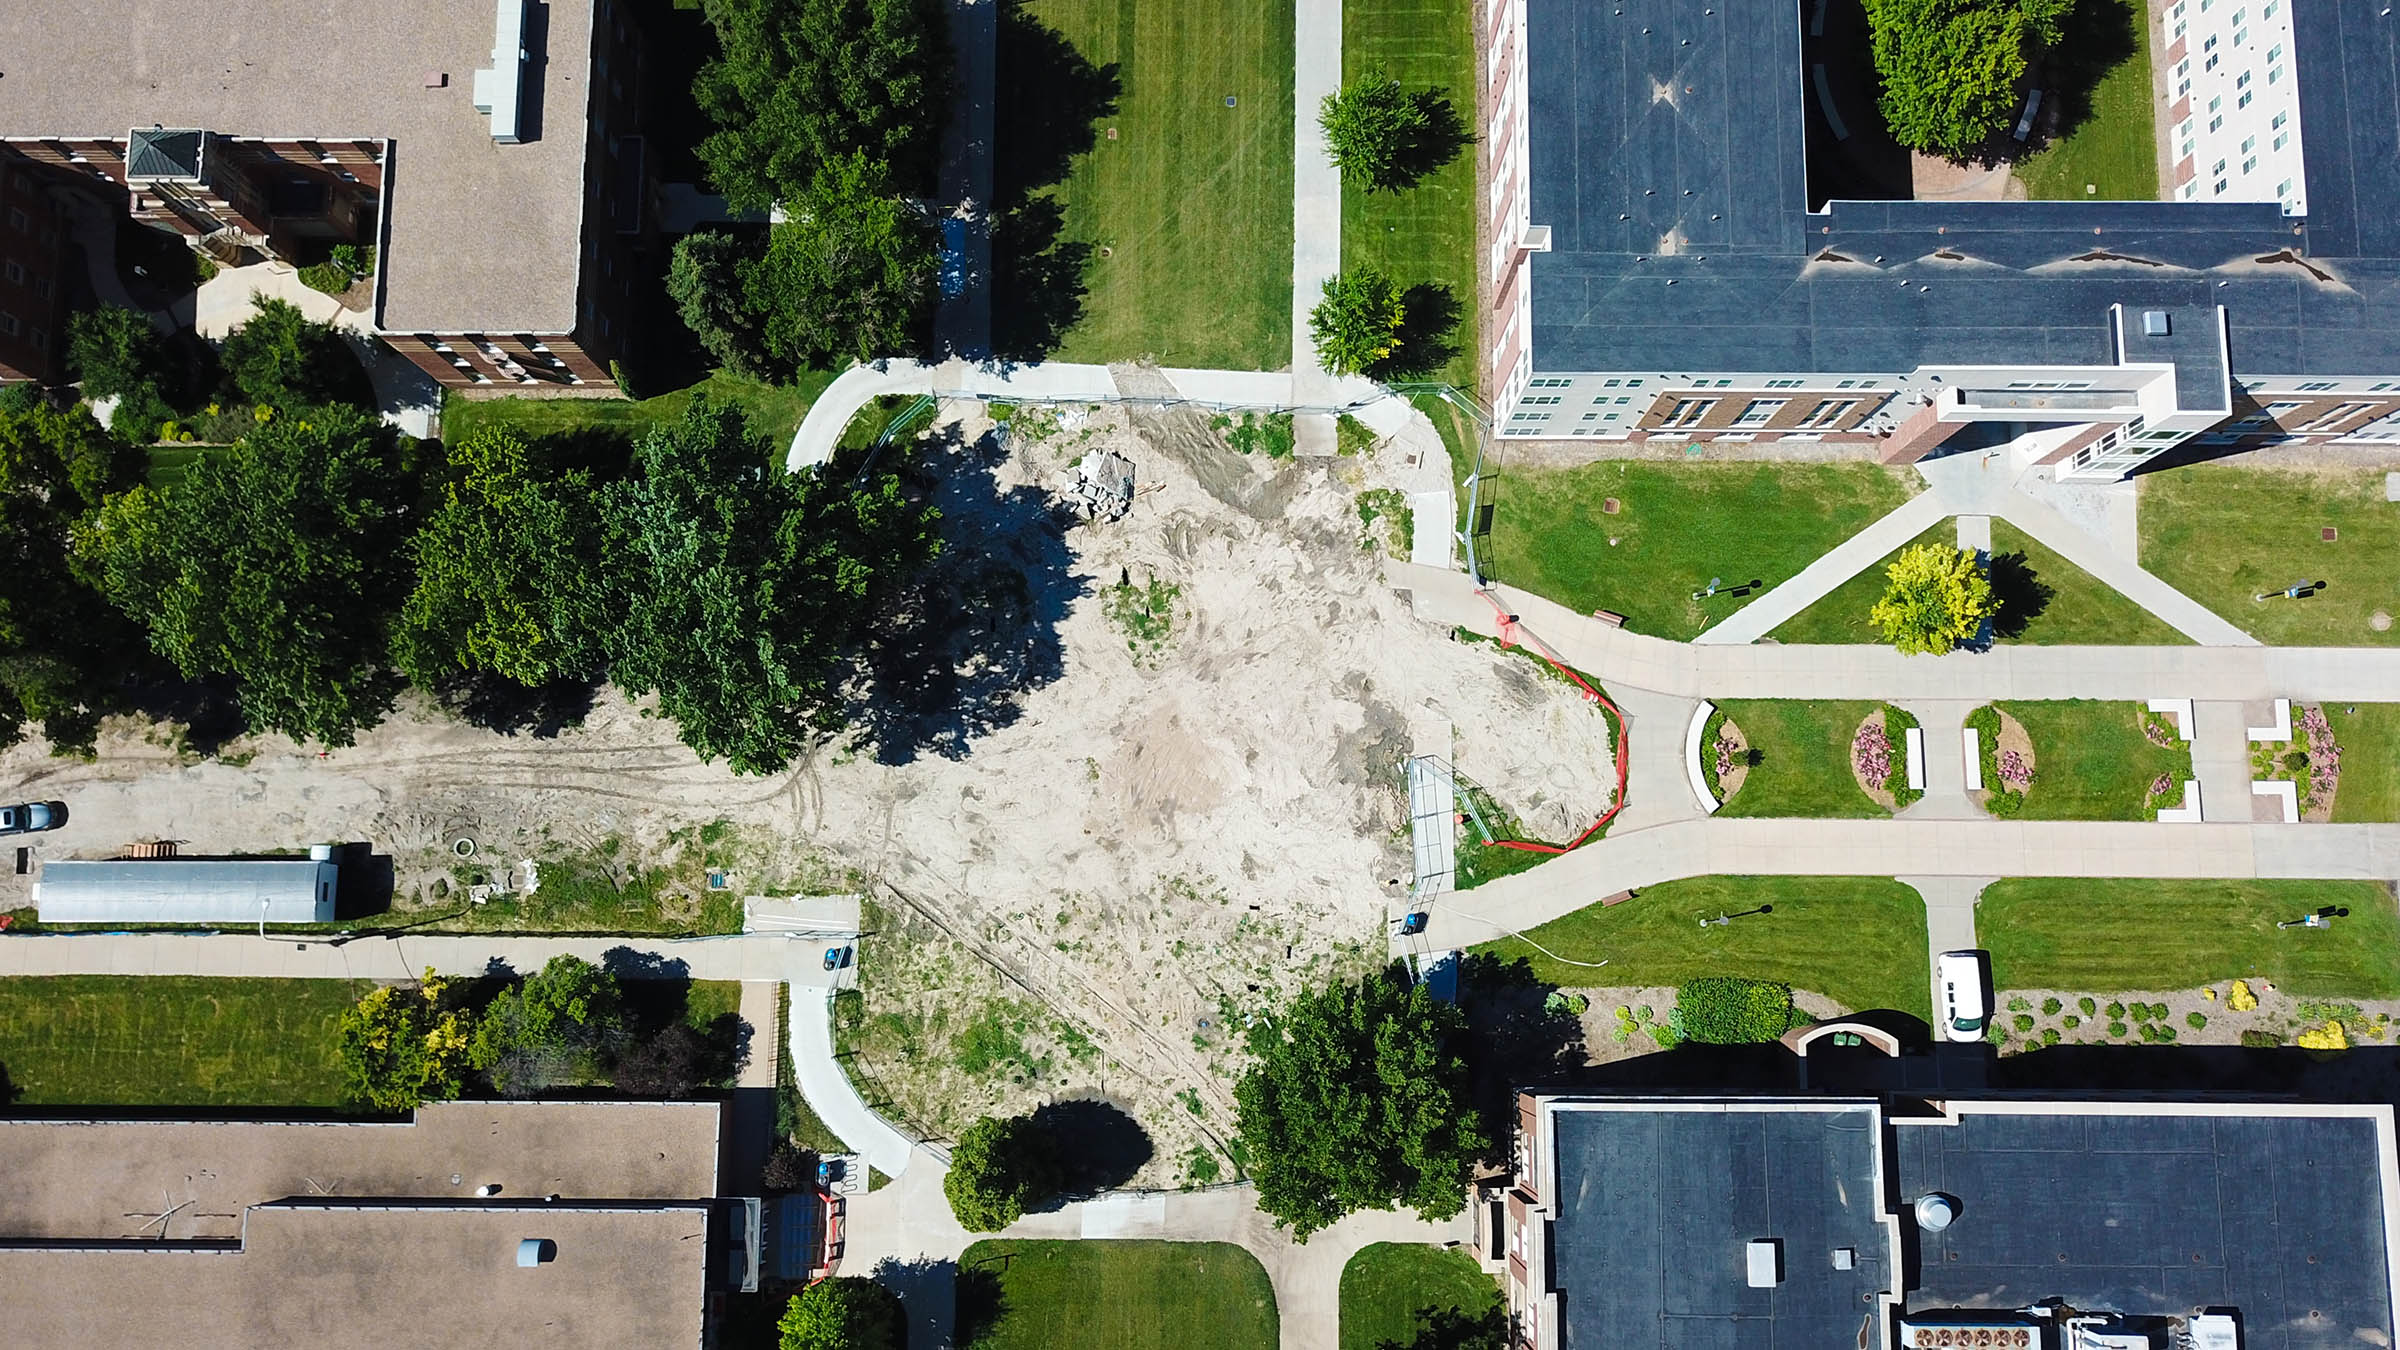 A new Cope Fountain will be installed between UNK's Nebraskan Student Union and Calvin T. Ryan Library. The project is scheduled for completion in mid-fall. (UNK Communications)